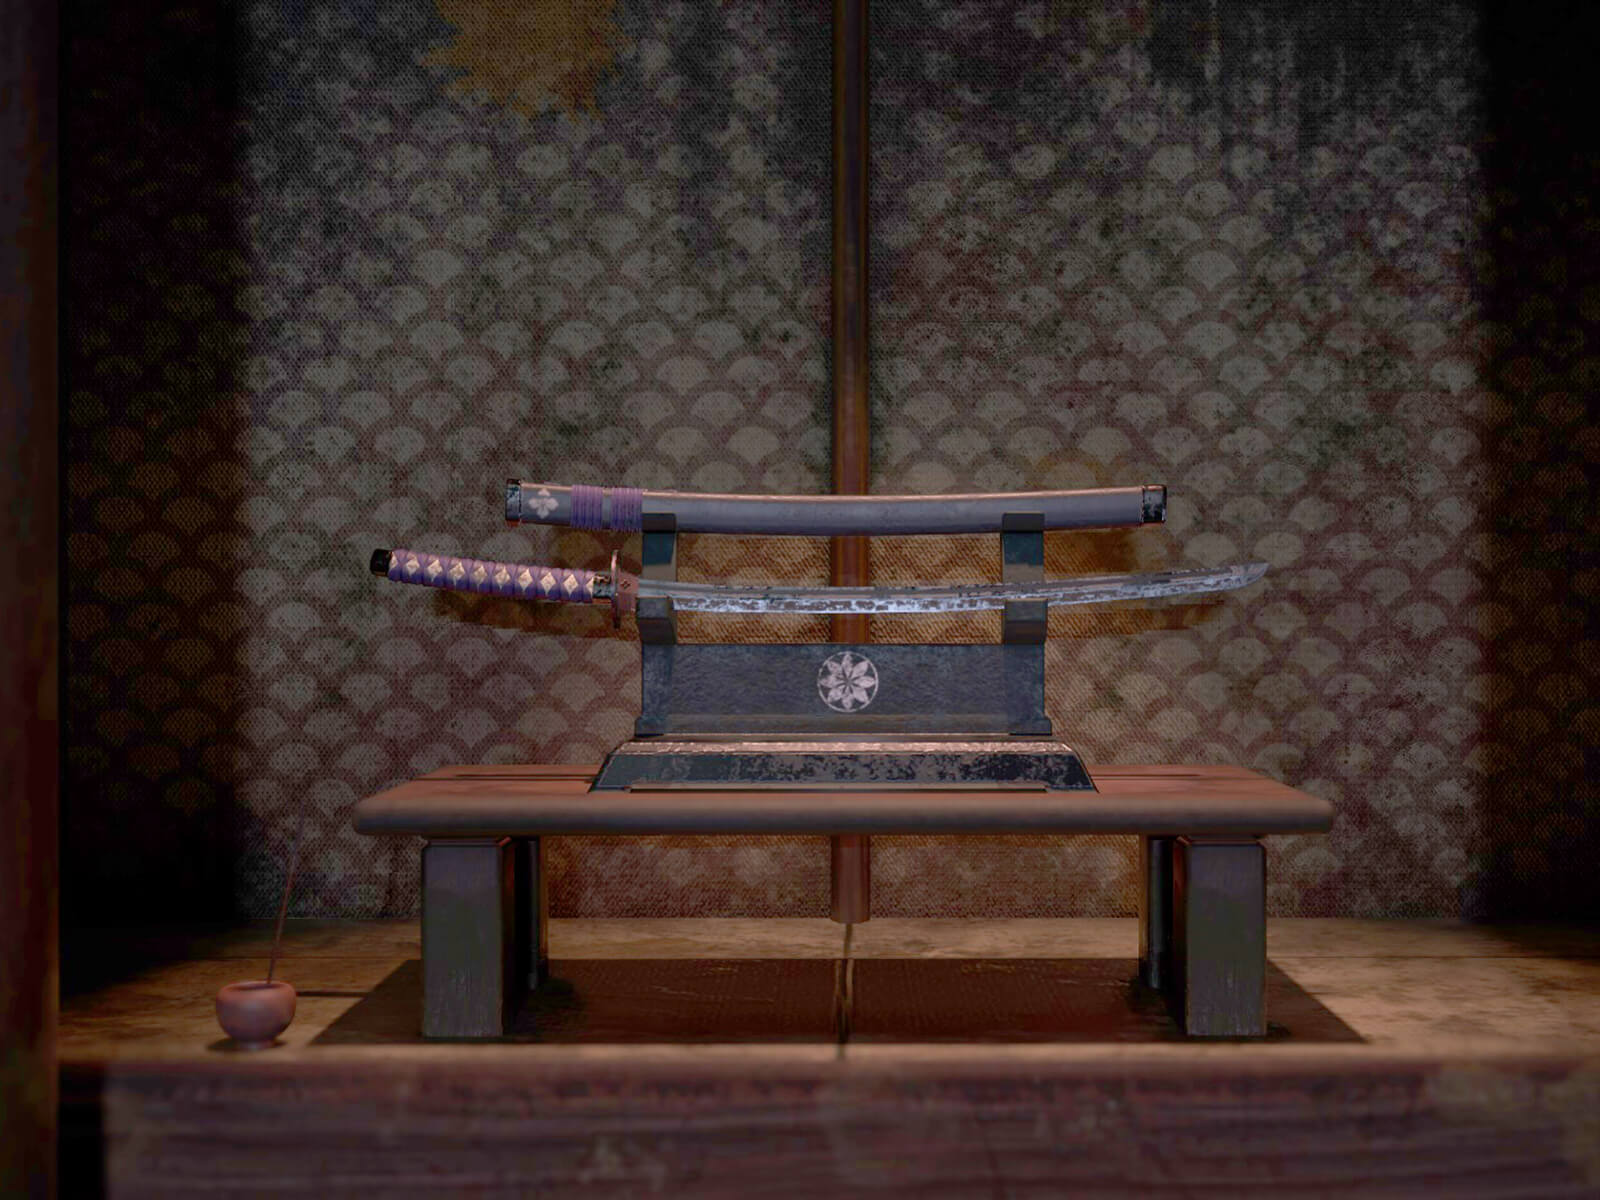 Ancient sword presented on a bench in an alcove